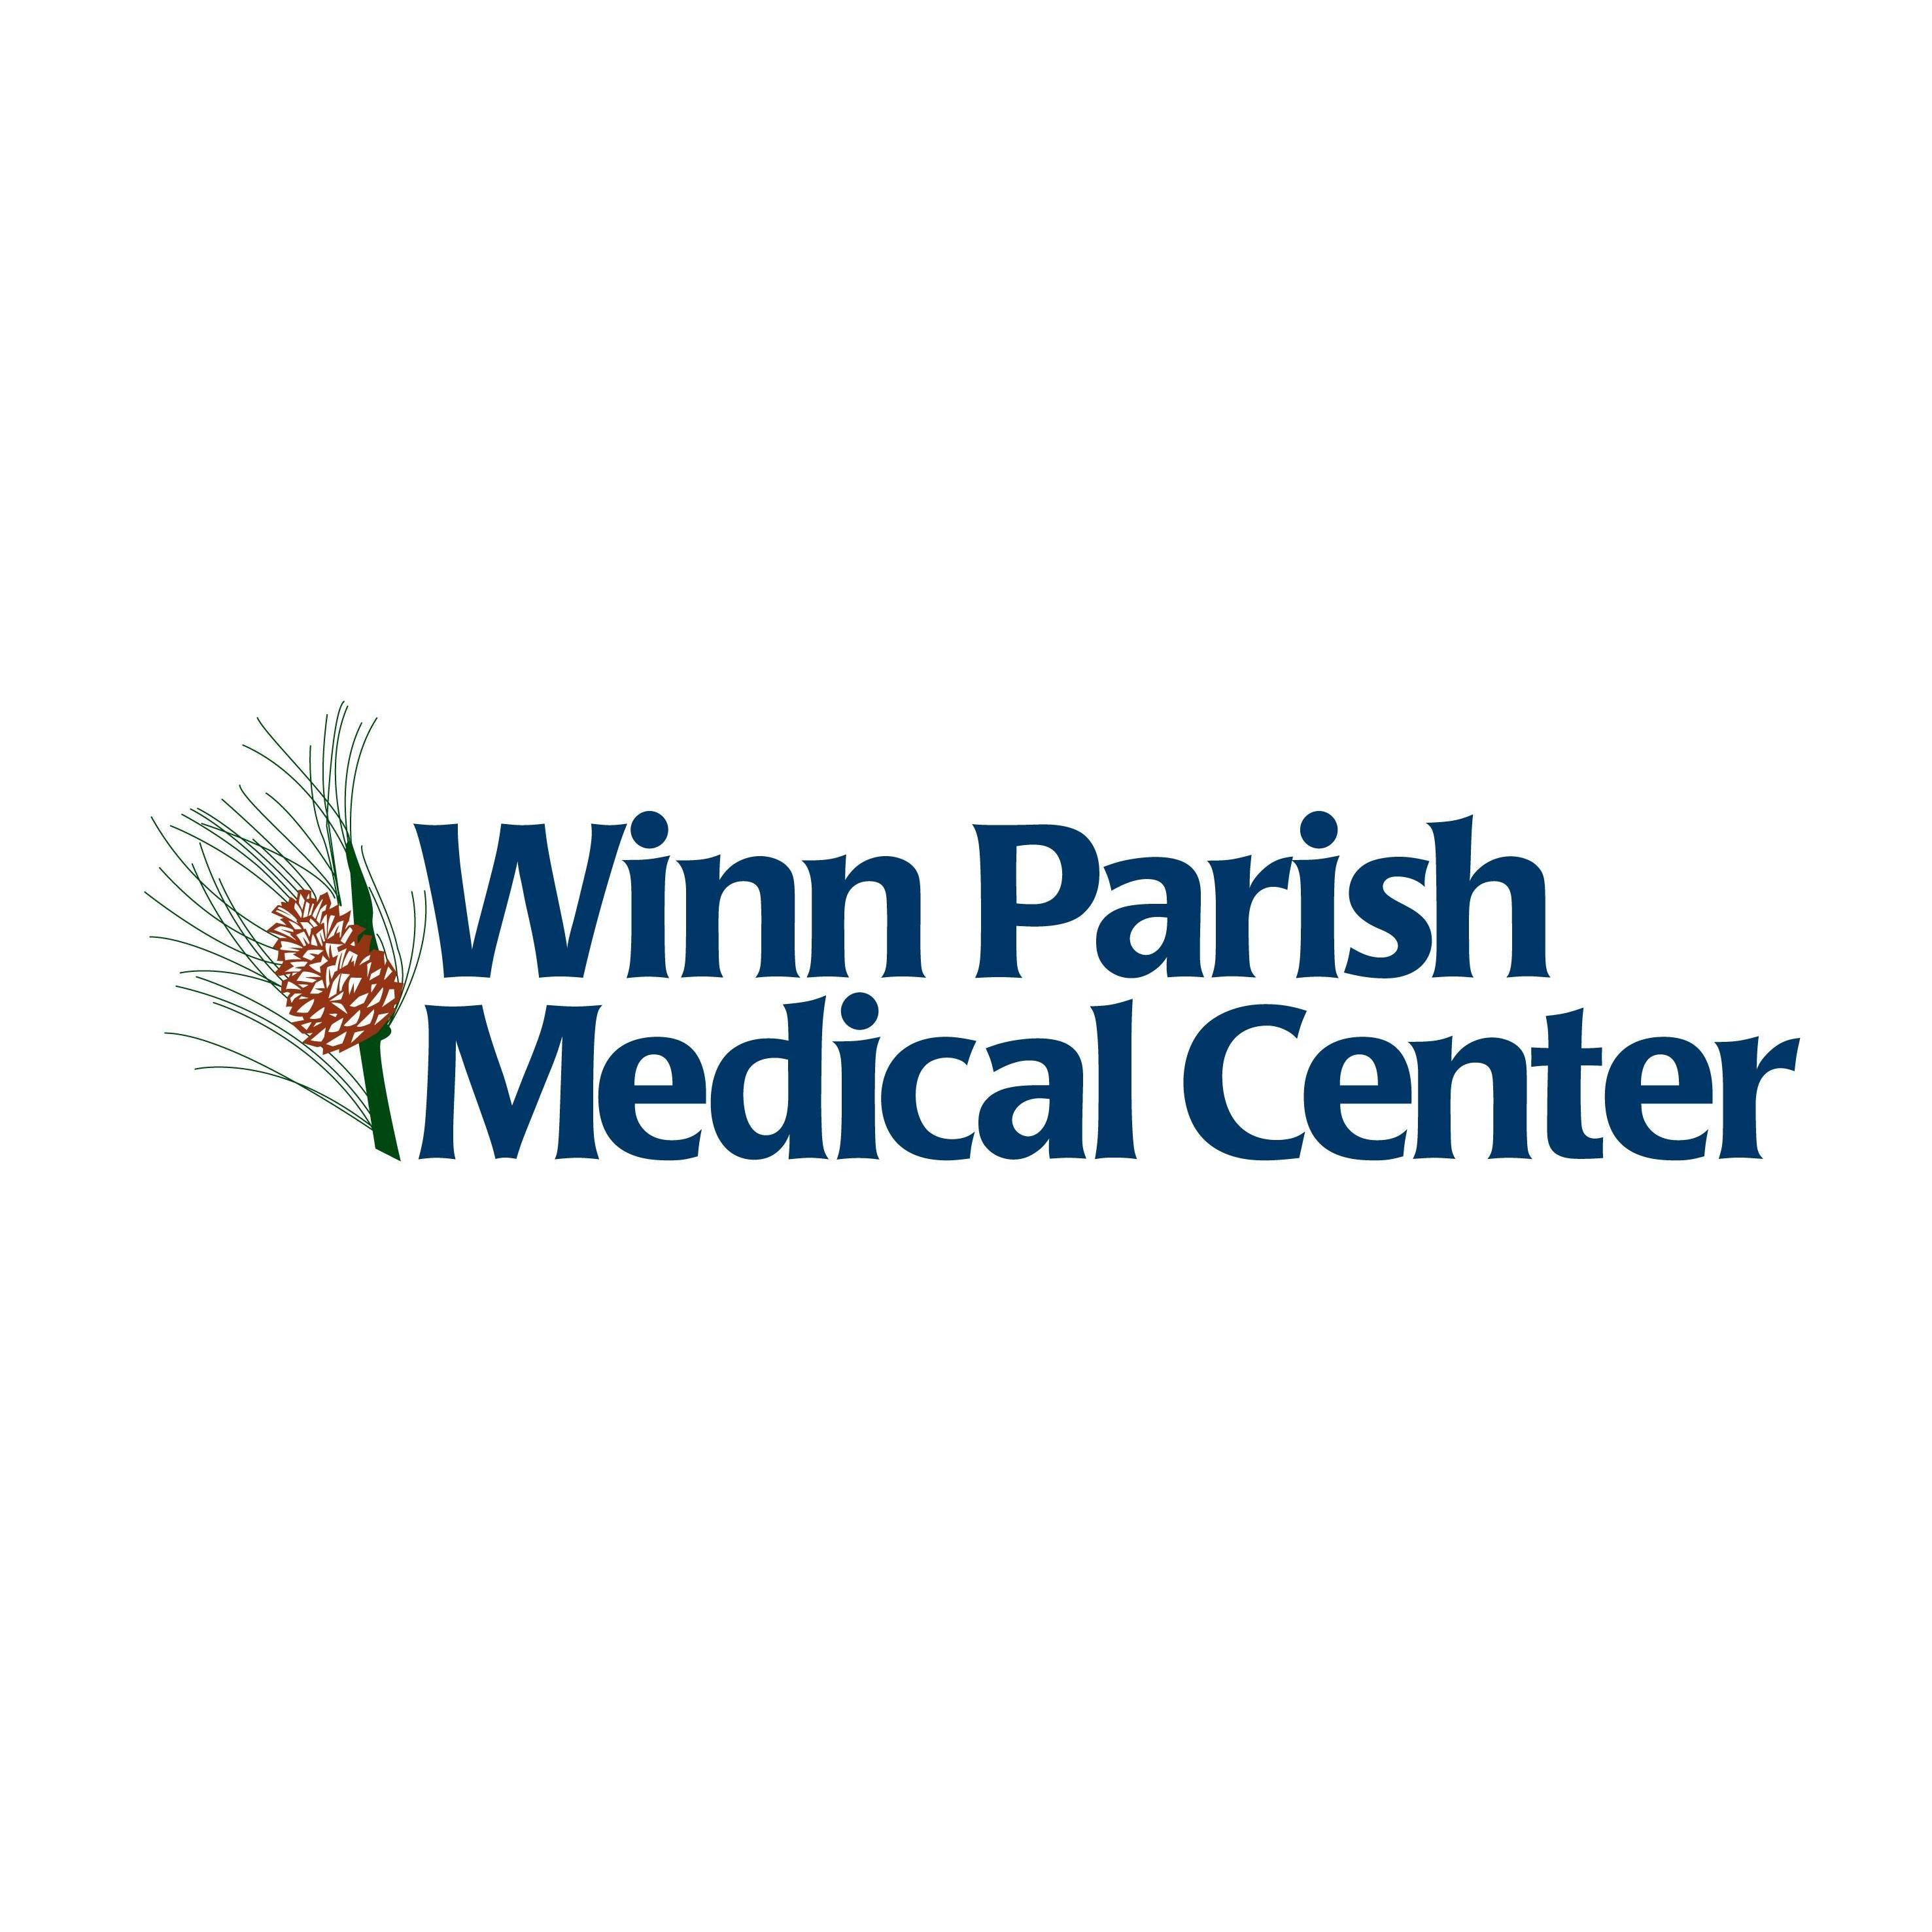 Winn Parish Medical Center